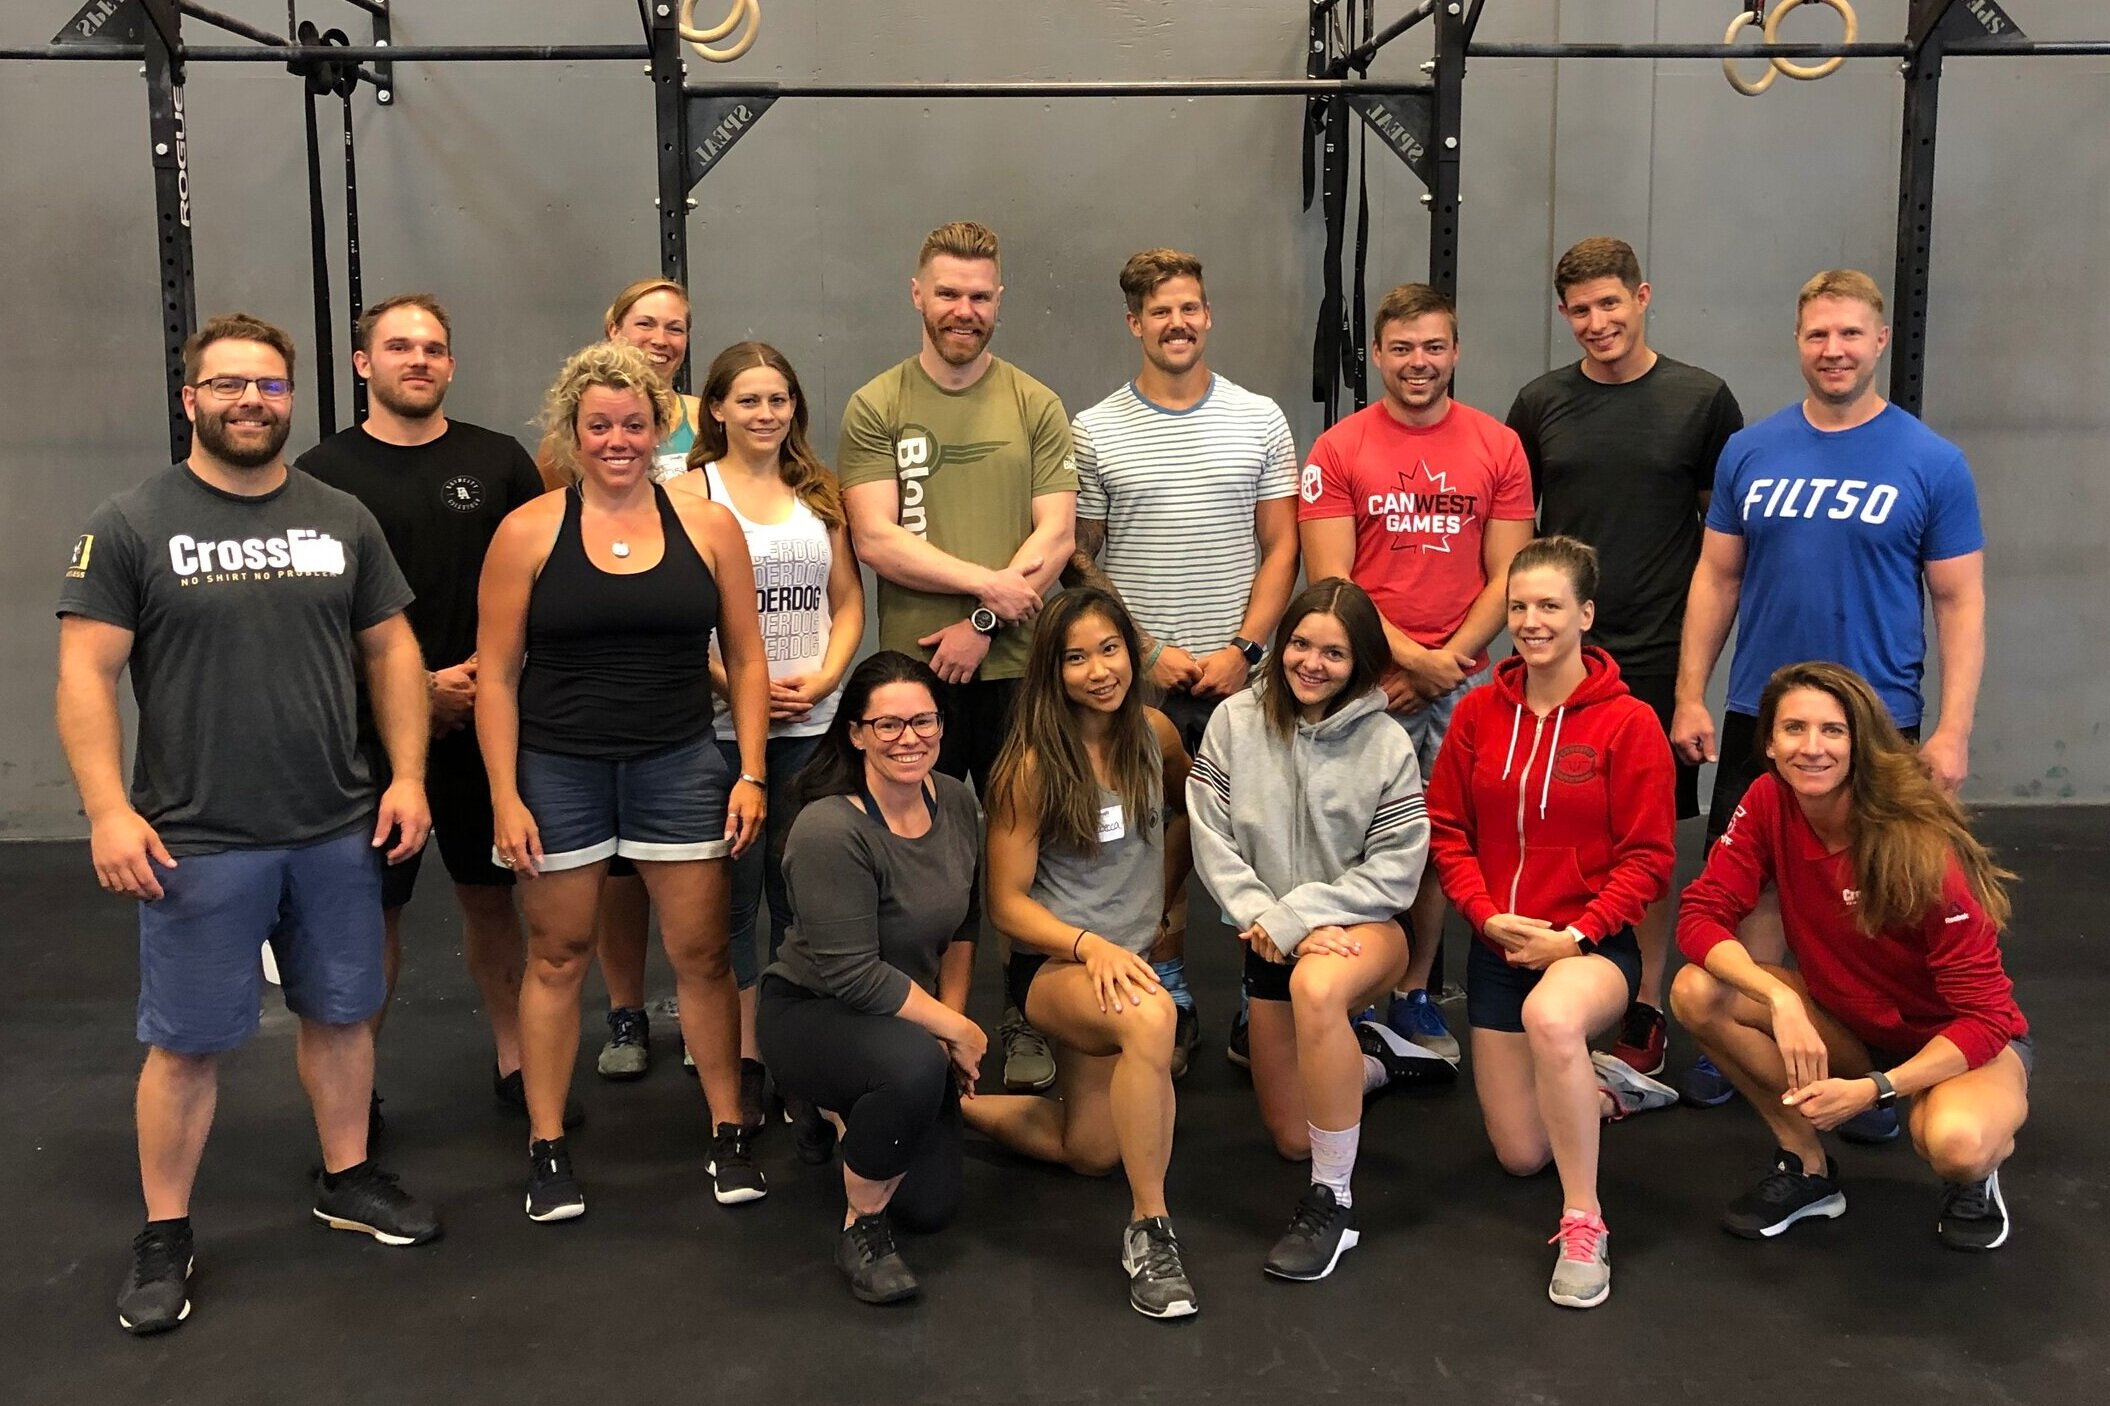 Coaches Katie, Rebecca, and Scotty all completed (and passed) their CrossFit Level 2 Certificate course as well as Simon who re-upped his certificate.